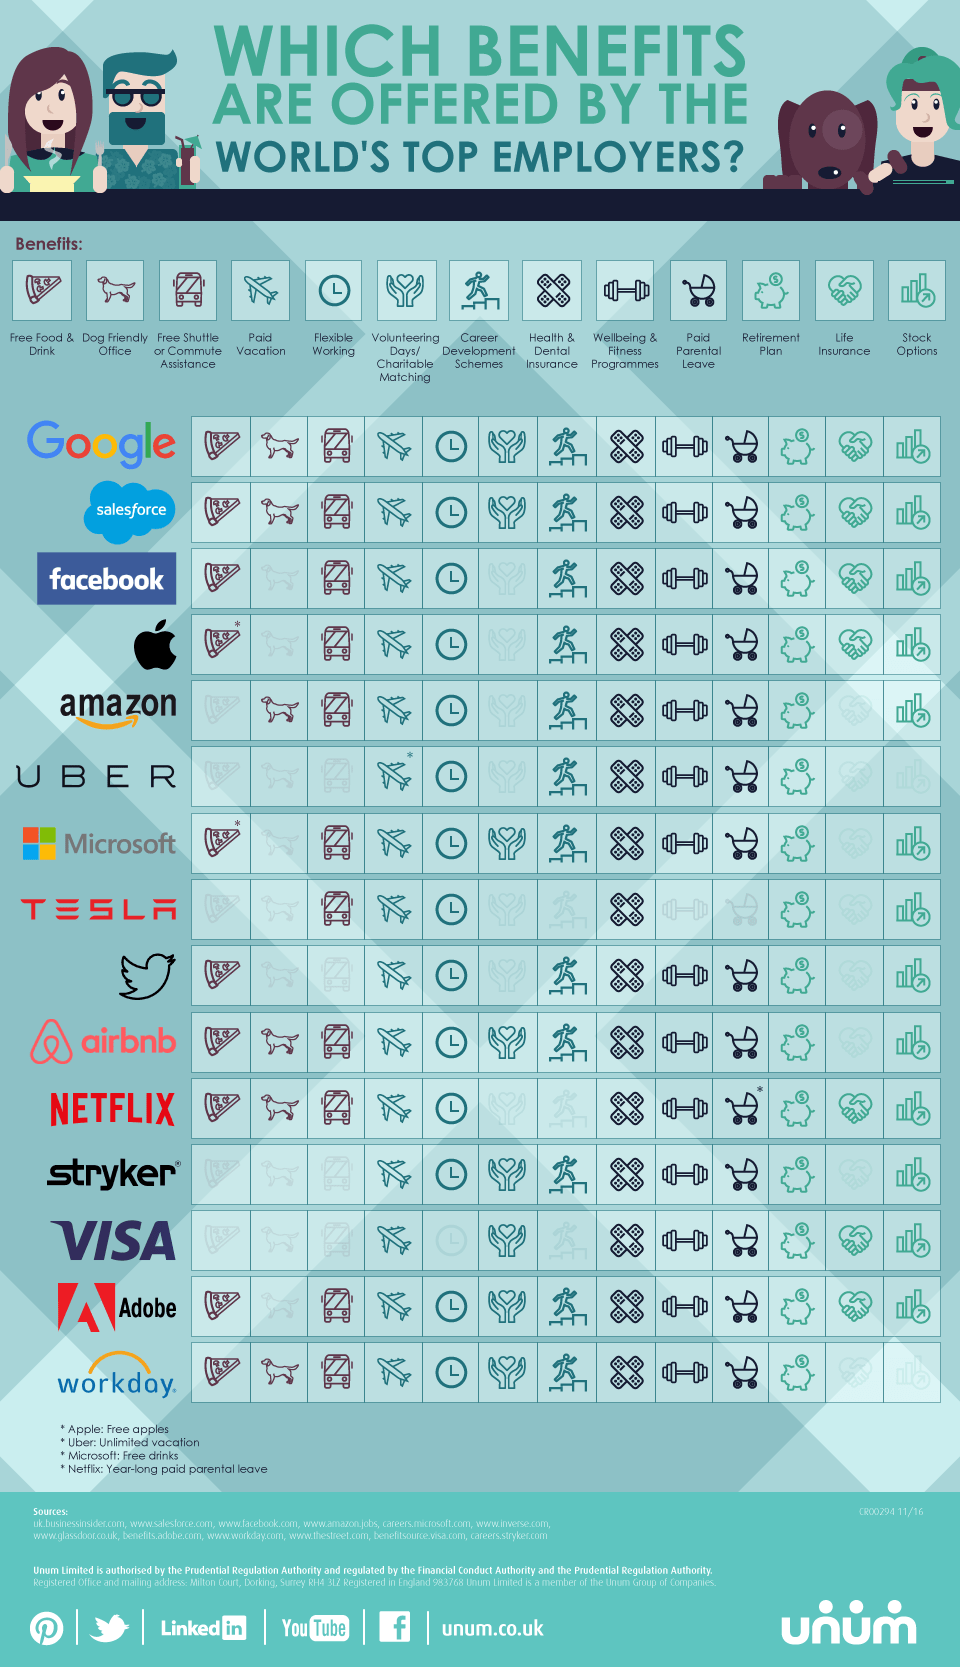 Which Benefits Are Offered By the World's Top Employers?